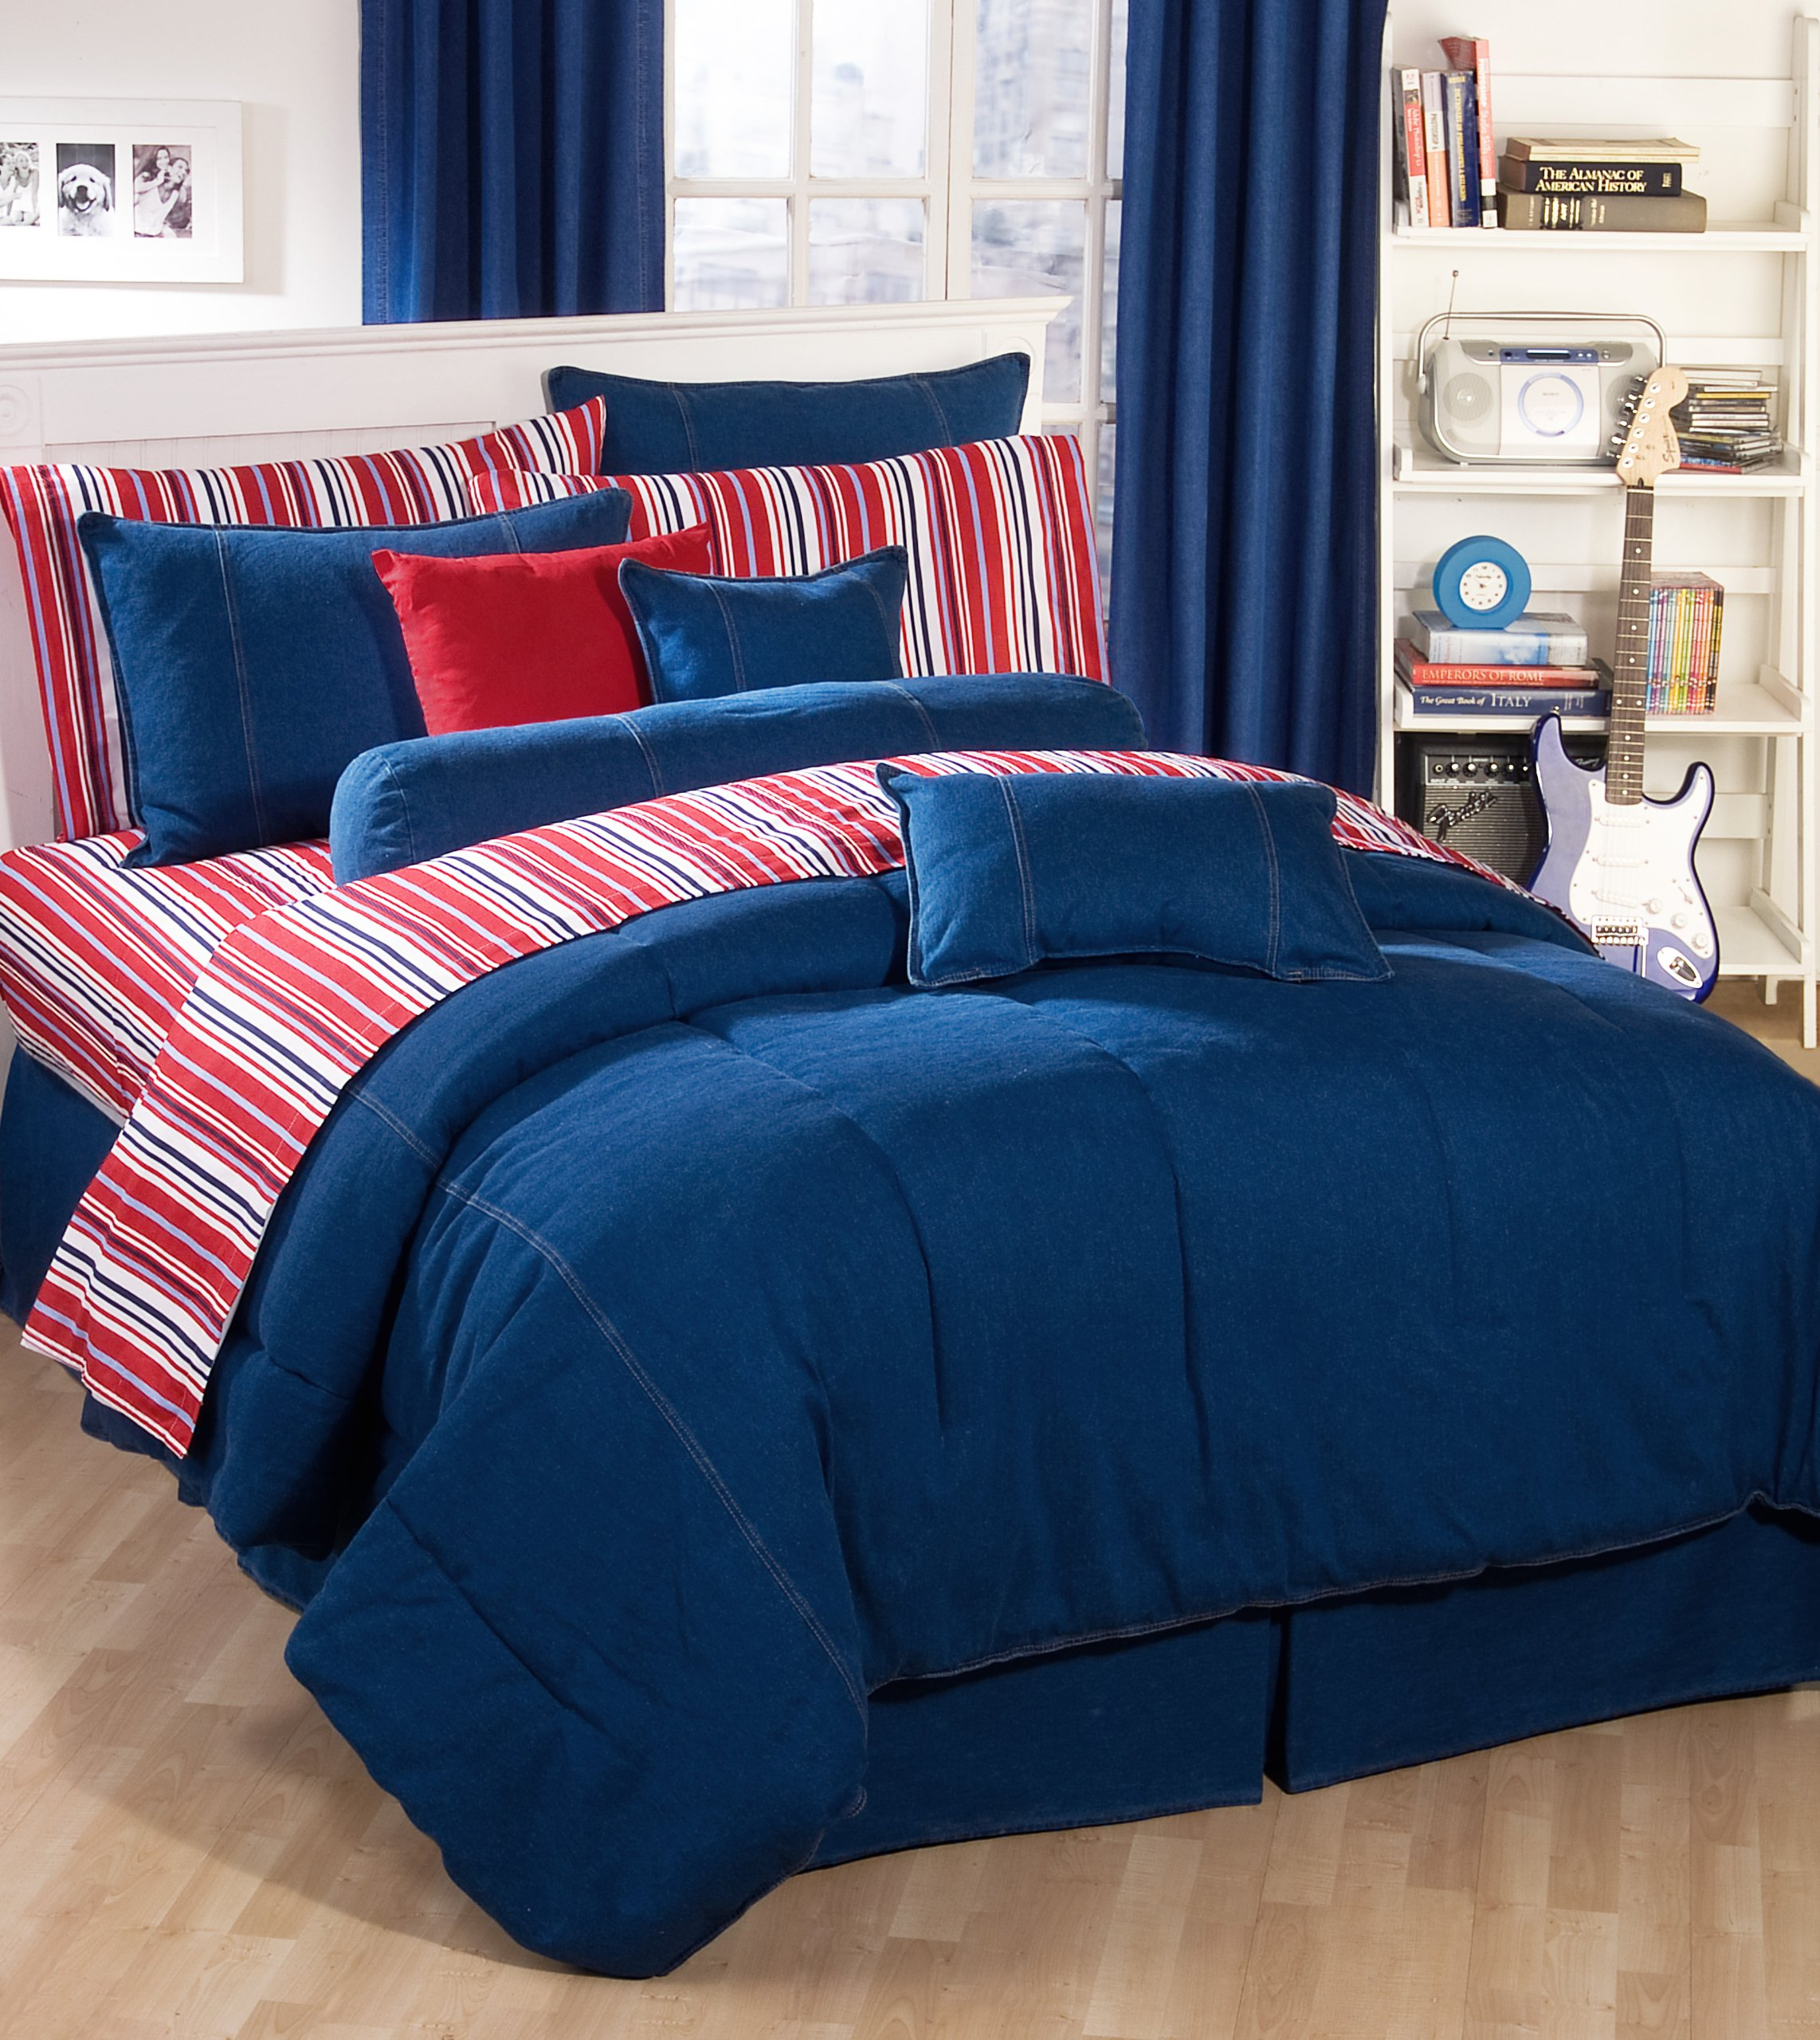 American Denim Comforter Set, Full by Kimlor